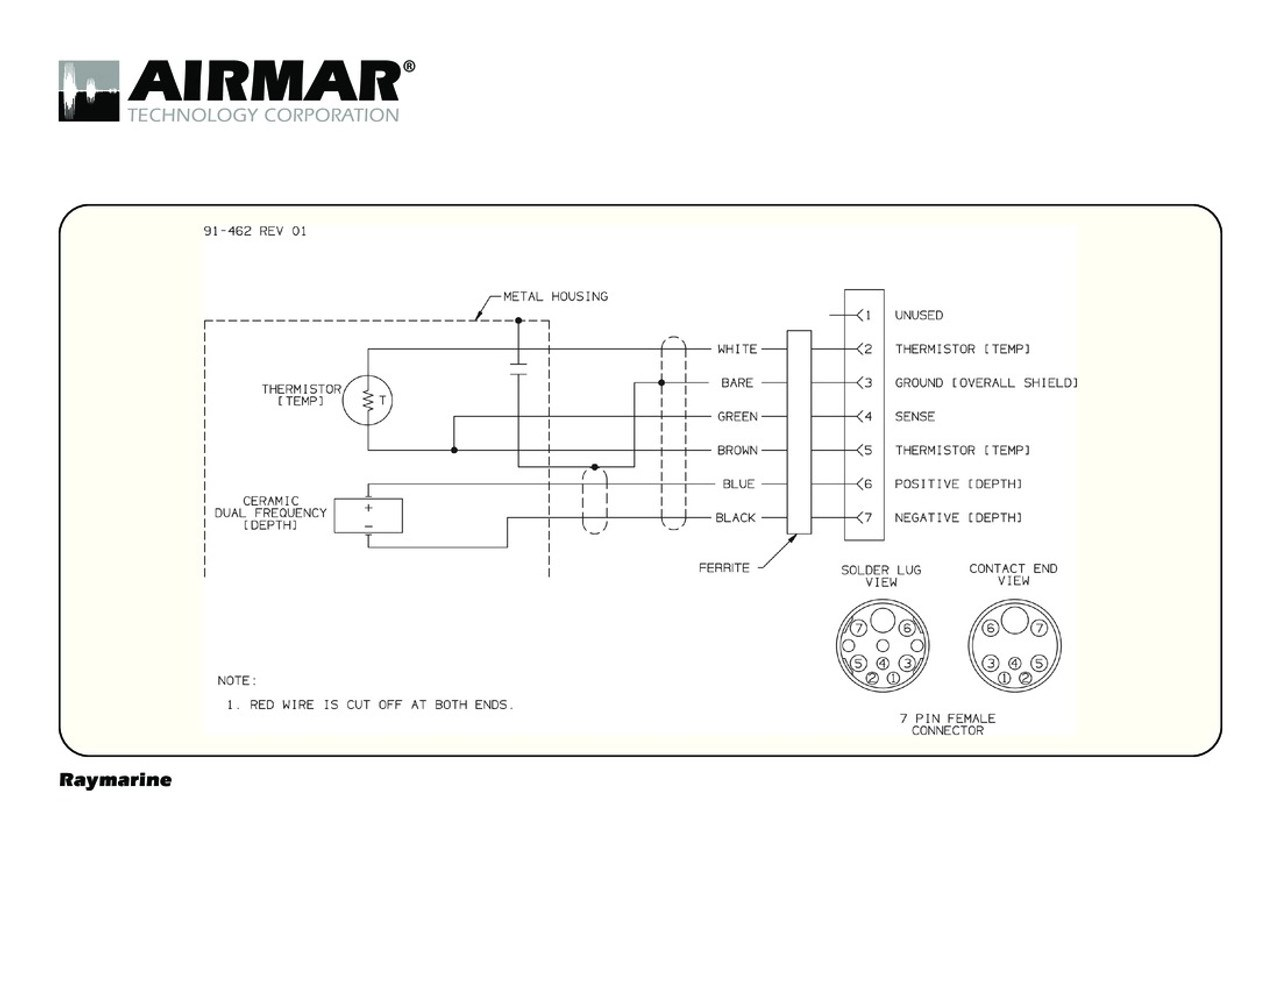 small resolution of lowrance nmea 0183 wiring diagram free download wiring diagram view lowrance nmea 0183 wiring pictures to